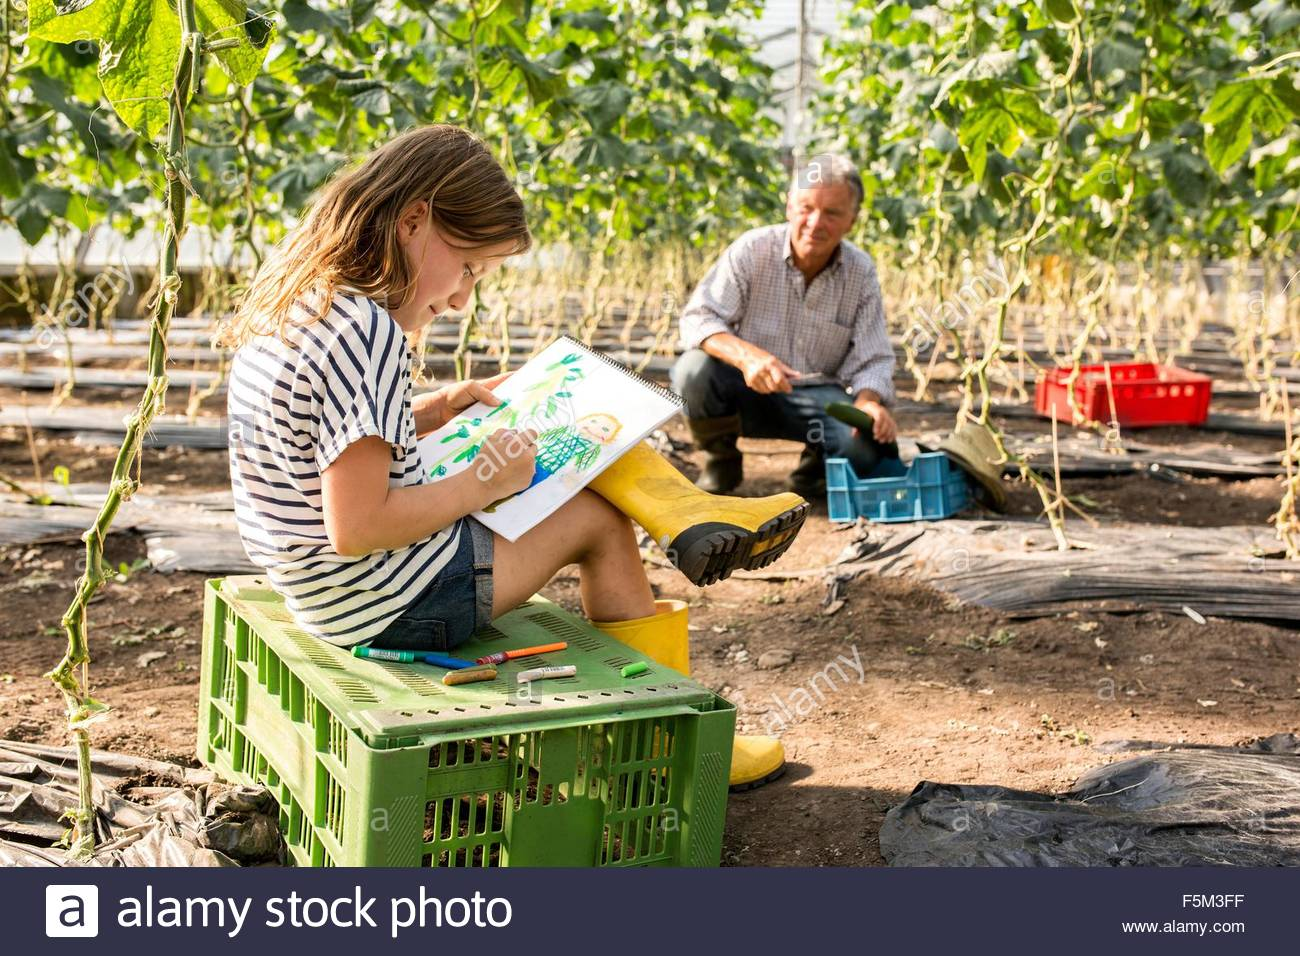 Girl sitting on crate drawing while grandfather works - Stock Image